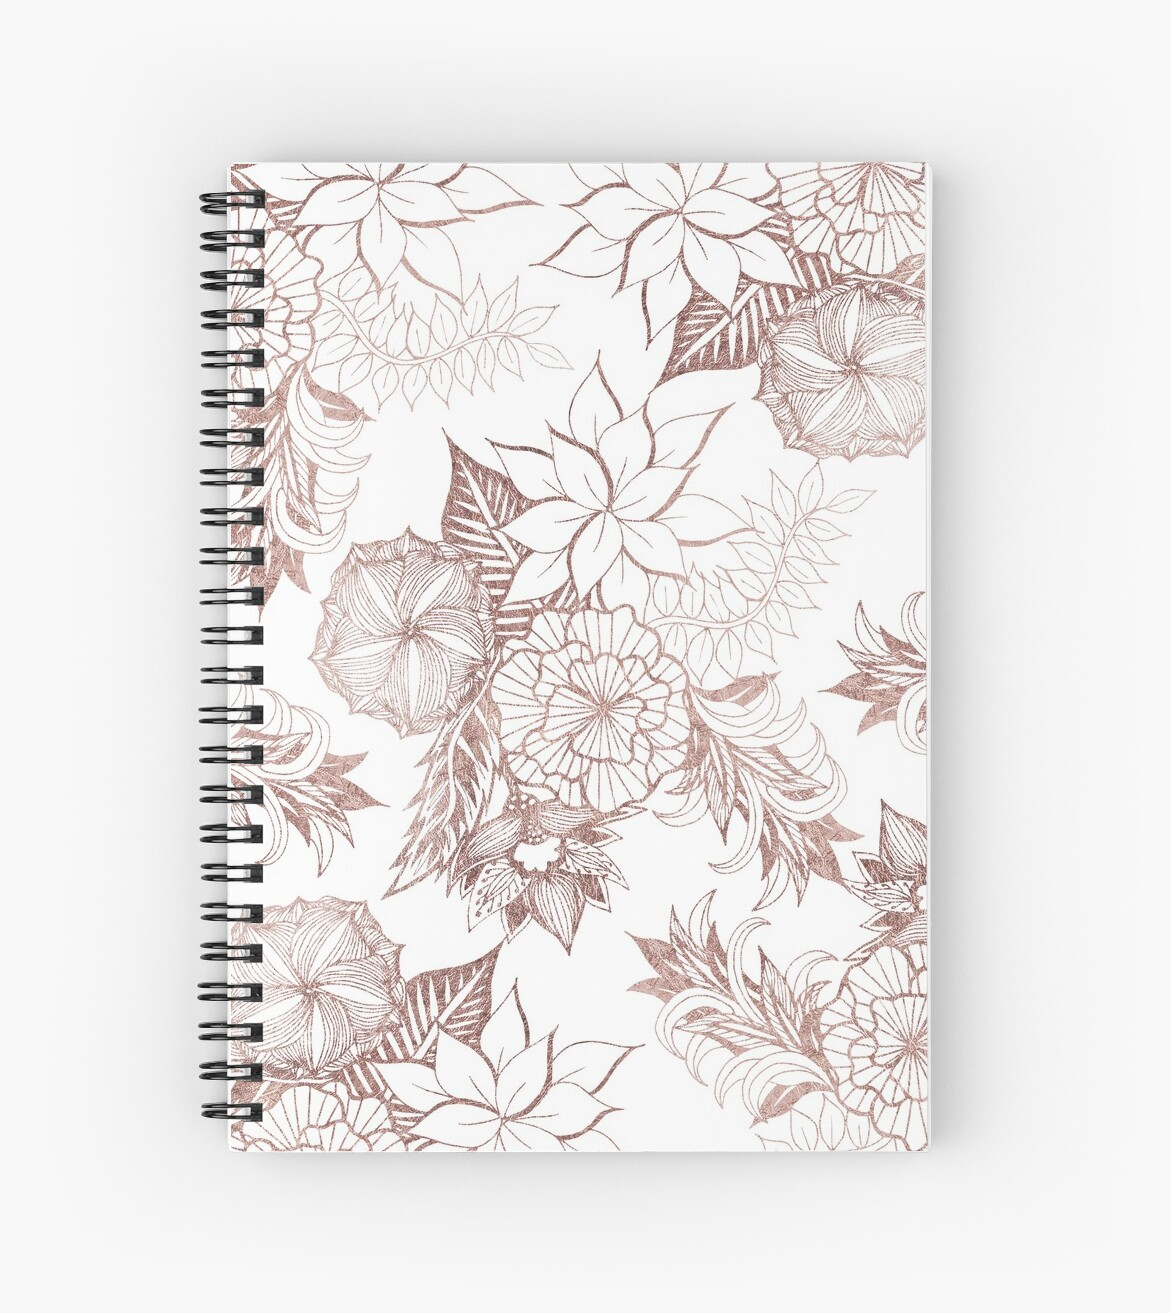 Modern Girly Rose Gold Floral Illustrations Spiral Notebook By